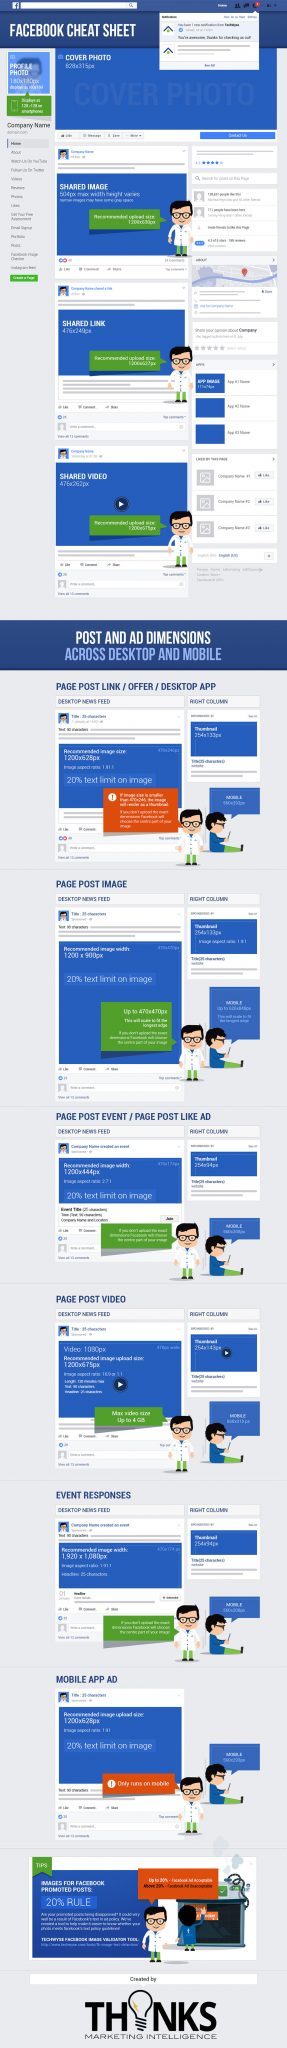 facebook-ad-marketing-page-post-shared-image-sizes